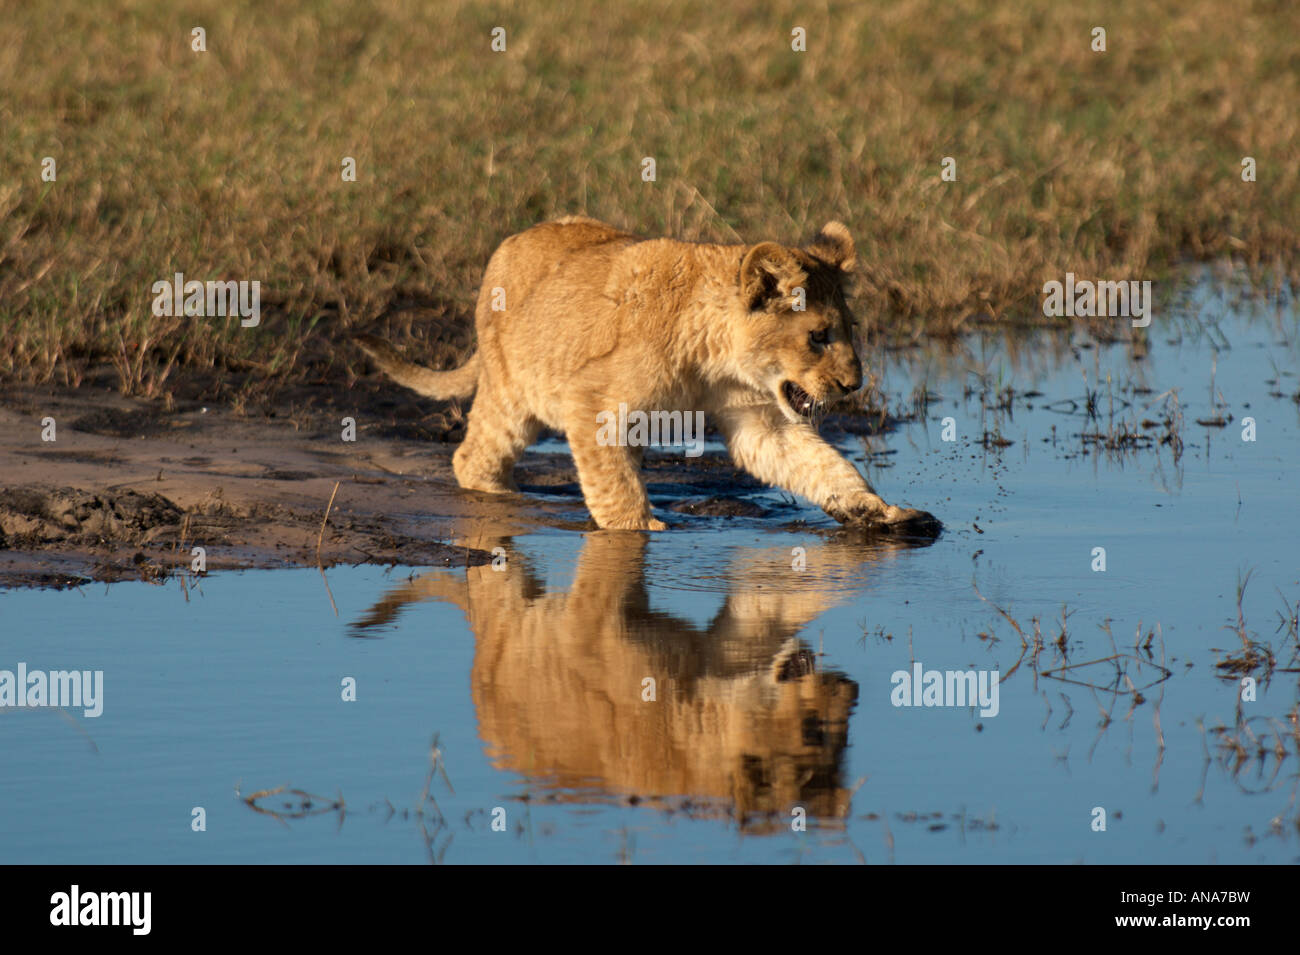 Lion cub snarling as it  tentatively walking into shallow water to cross a small stream - Stock Image